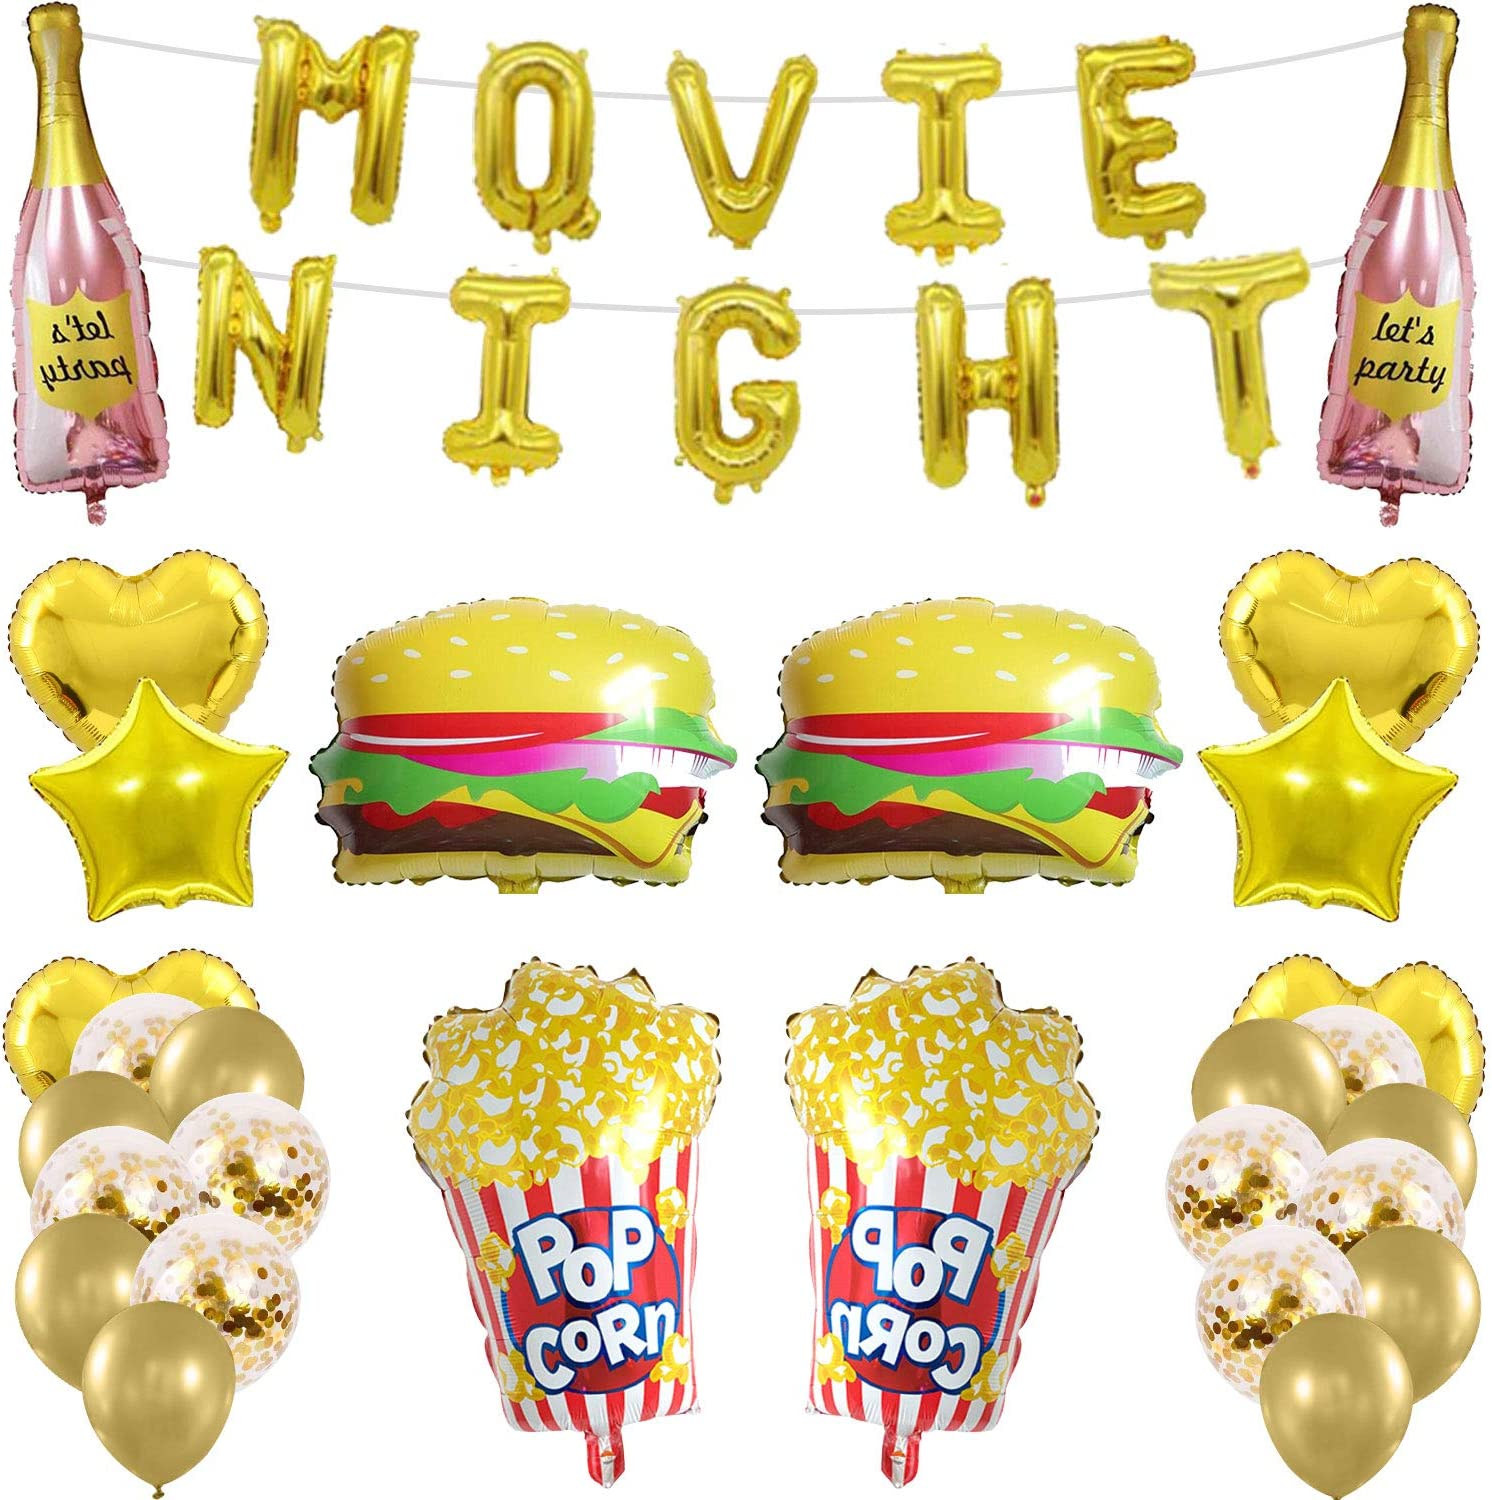 Amazon Com Molecole 49pcs Movie Night Themed Party Decoration Balloons Birthday Party Supplies For Hollywood Movie Party Supplies Balloon Decor For Indooroutdoor Backyard Movie Theater Party Toys Games